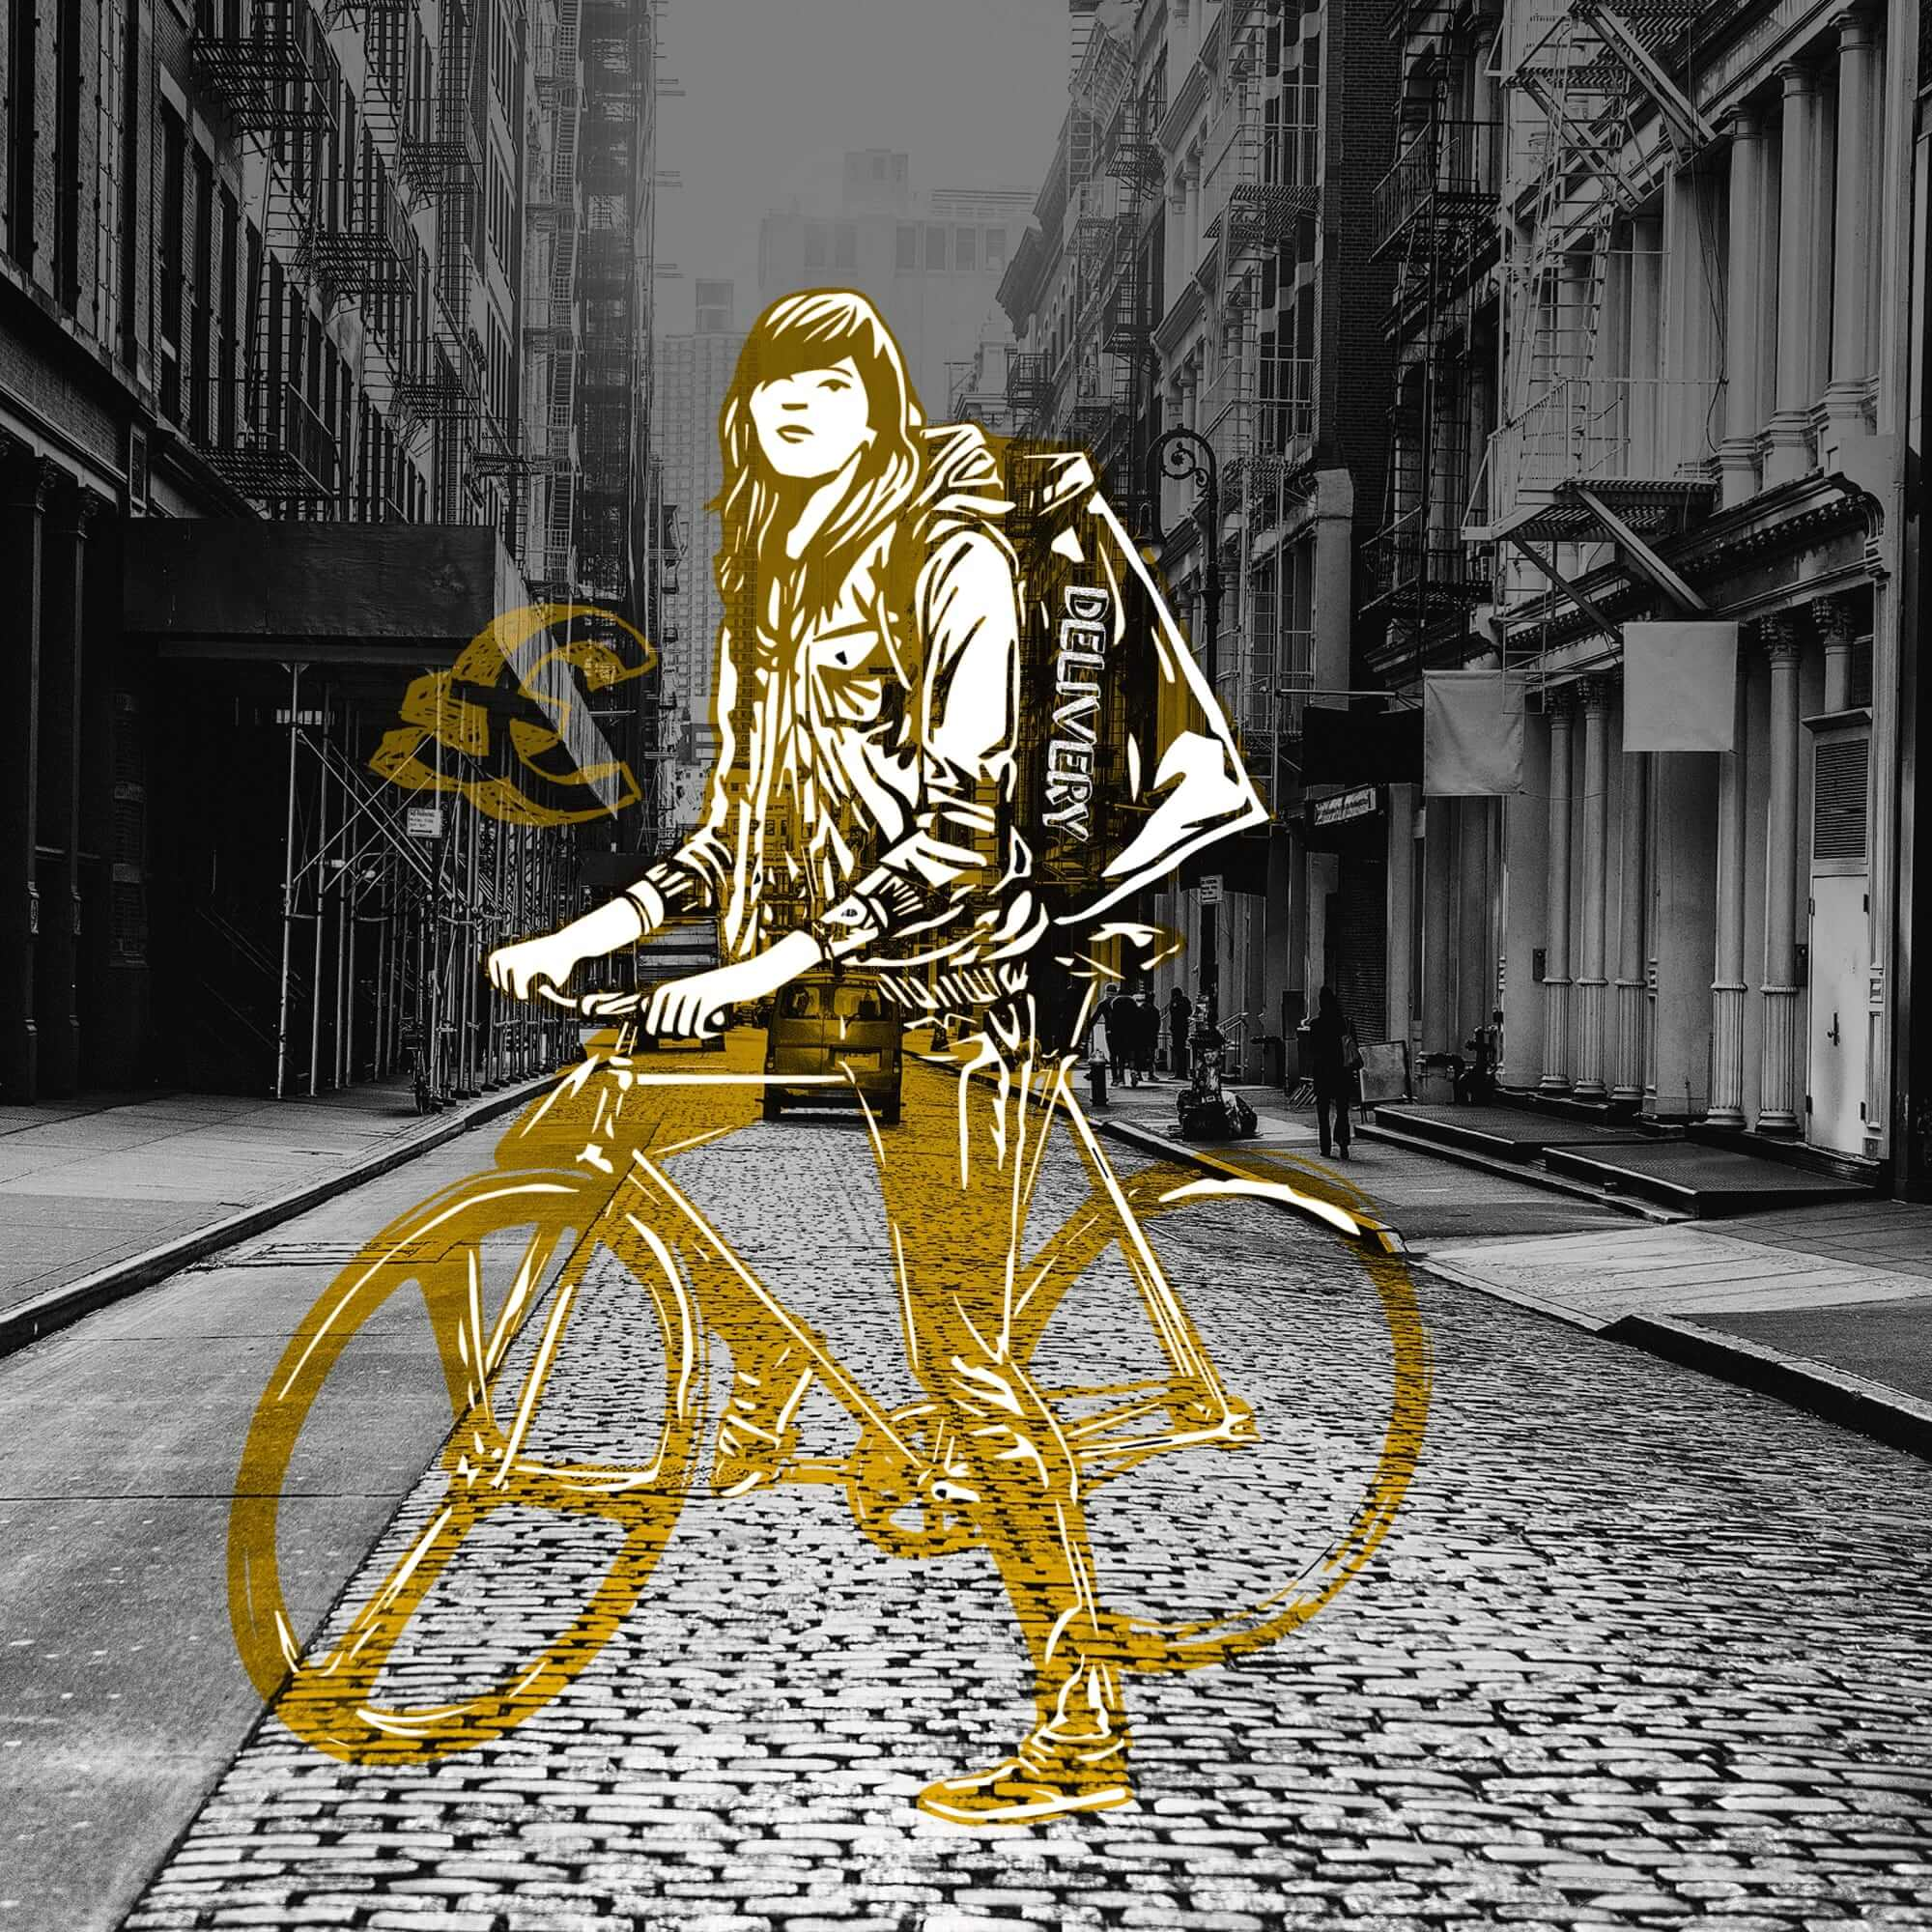 Drawing of a person on a bike in the street